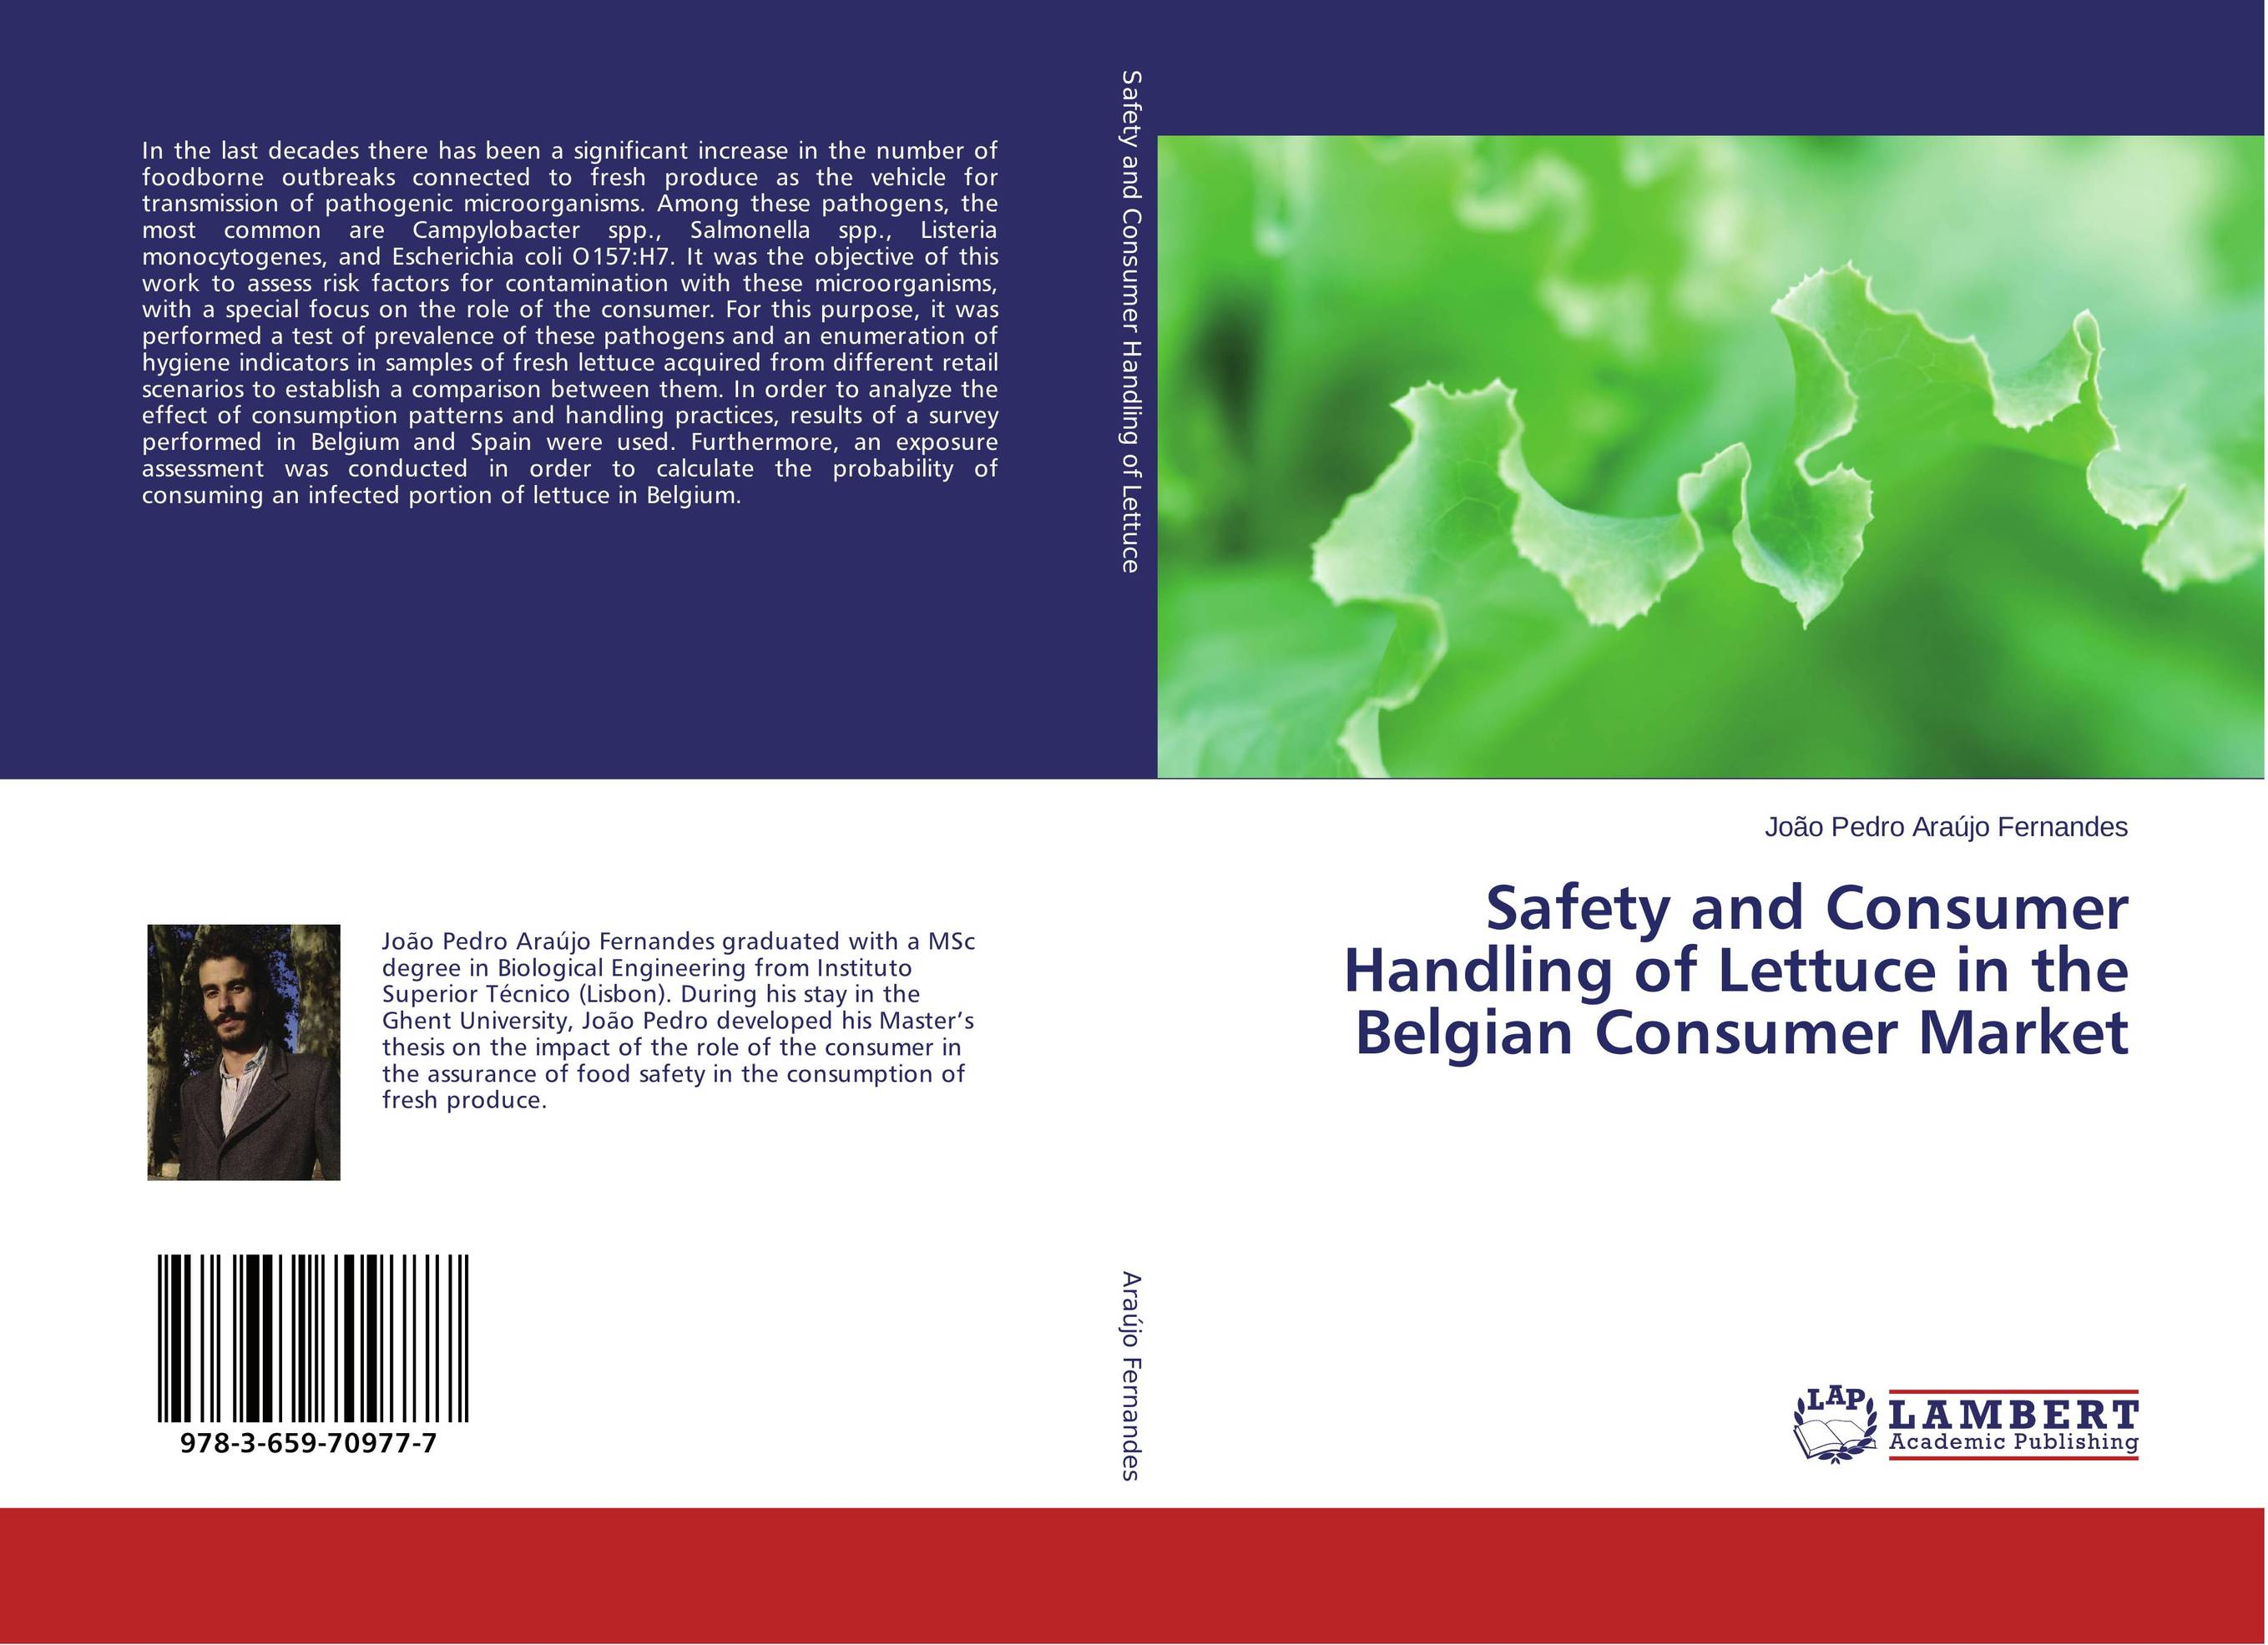 Safety and Consumer Handling of Lettuce in the Belgian Consumer Market